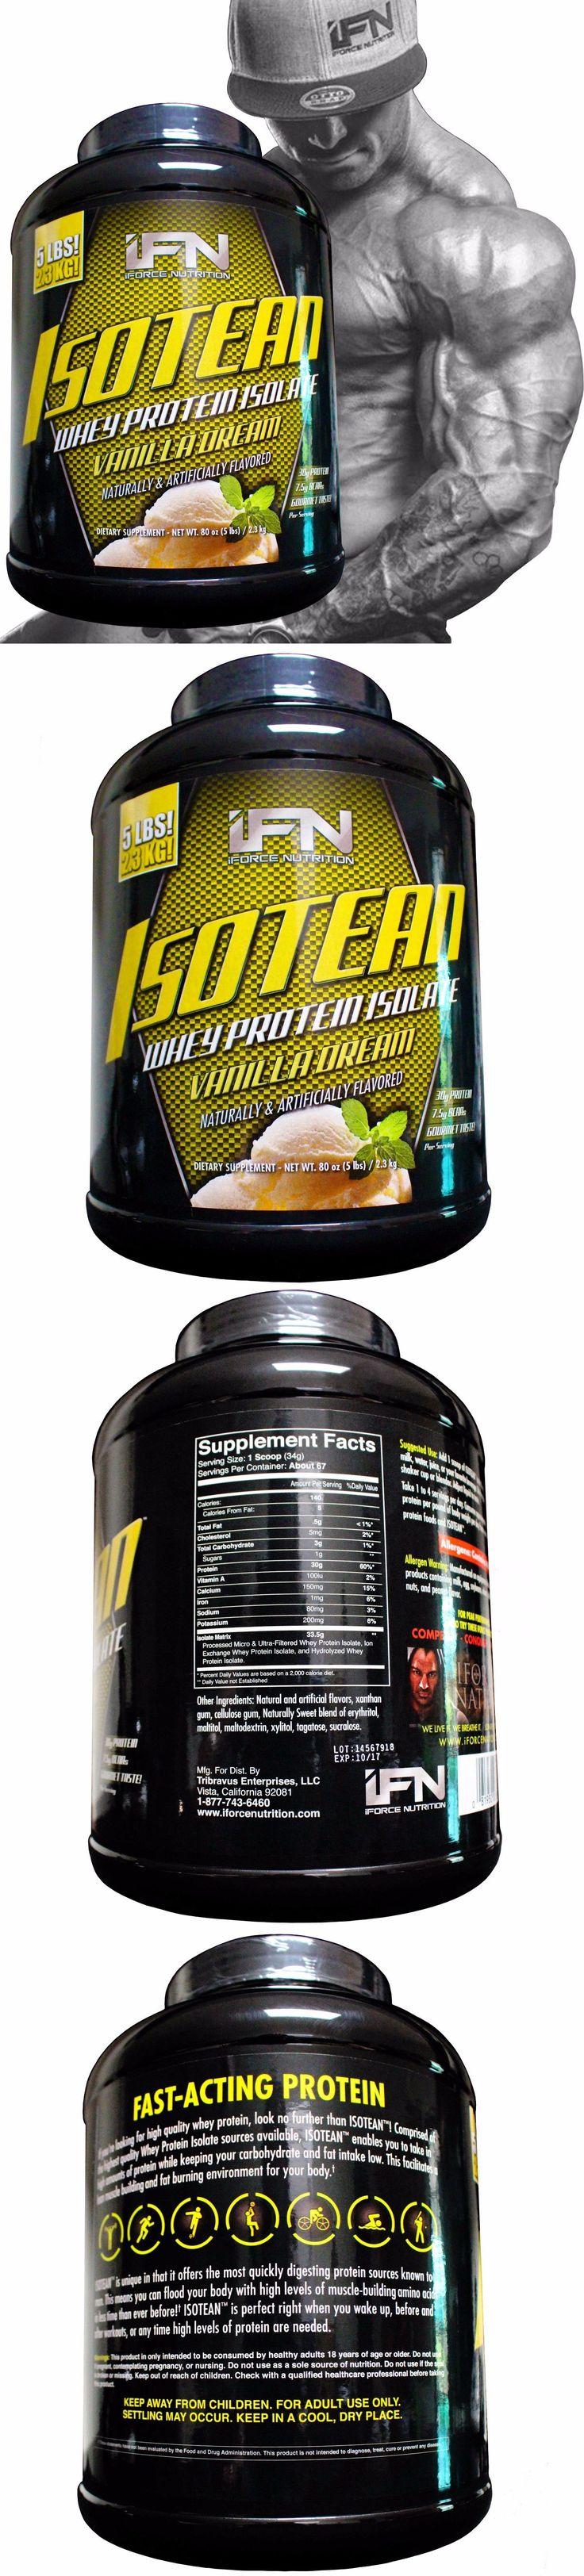 Sports Diet and Weight Loss: 5 Lbs 67 Serv. Isotean Whey Protein Isolate Vanilla Pre Workout, Muscle Builder -> BUY IT NOW ONLY: $51.99 on eBay!